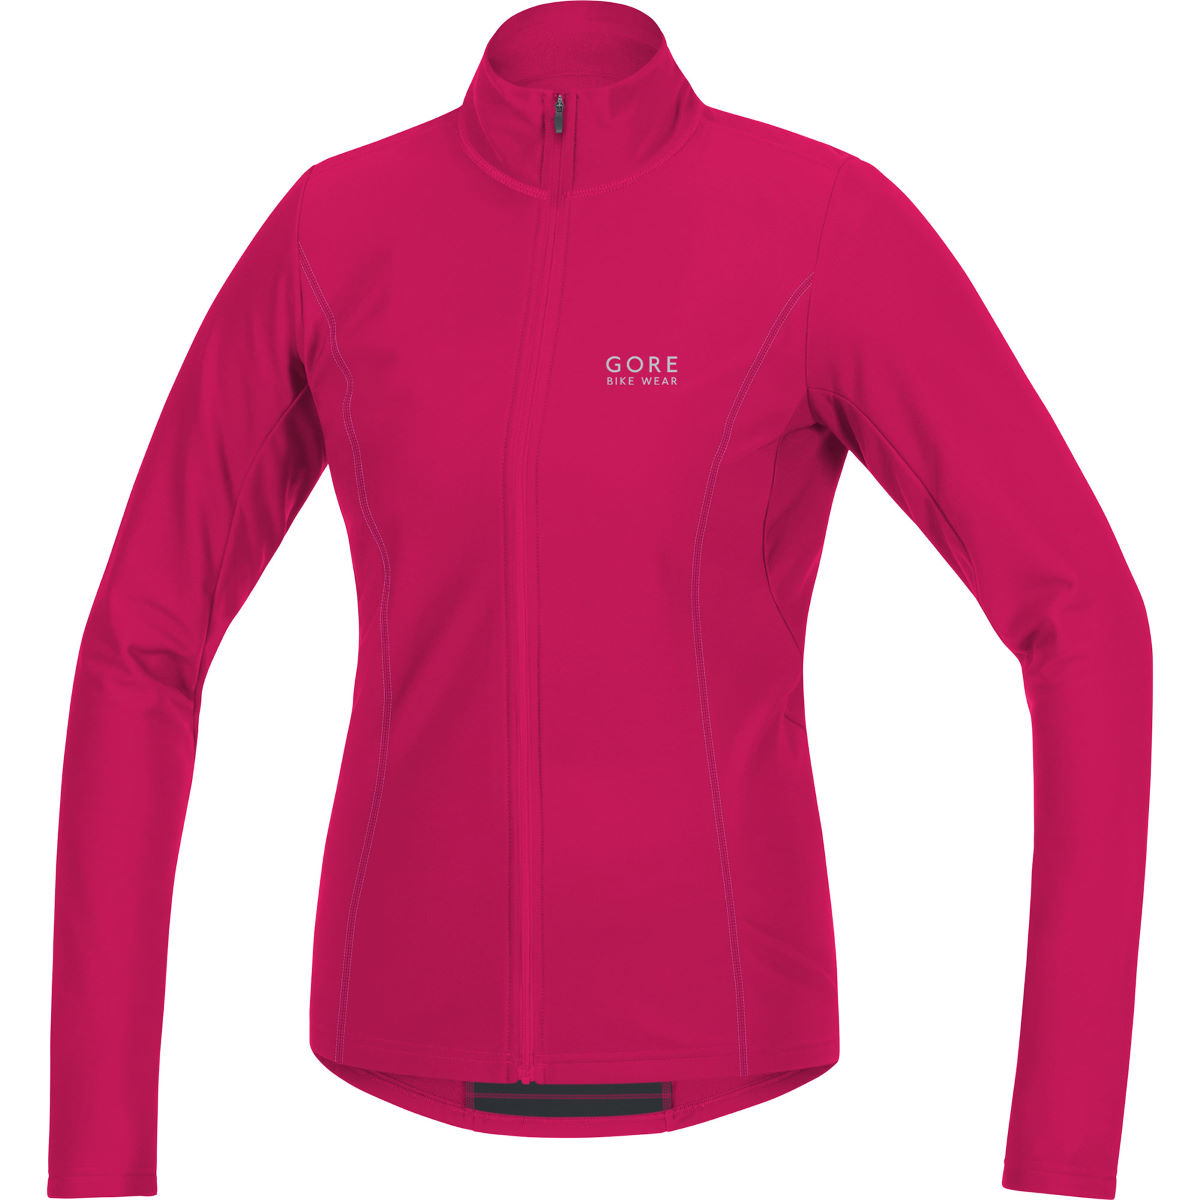 Maillot Femme Gore Bike Wear E Thermo (manches longues) - X Small